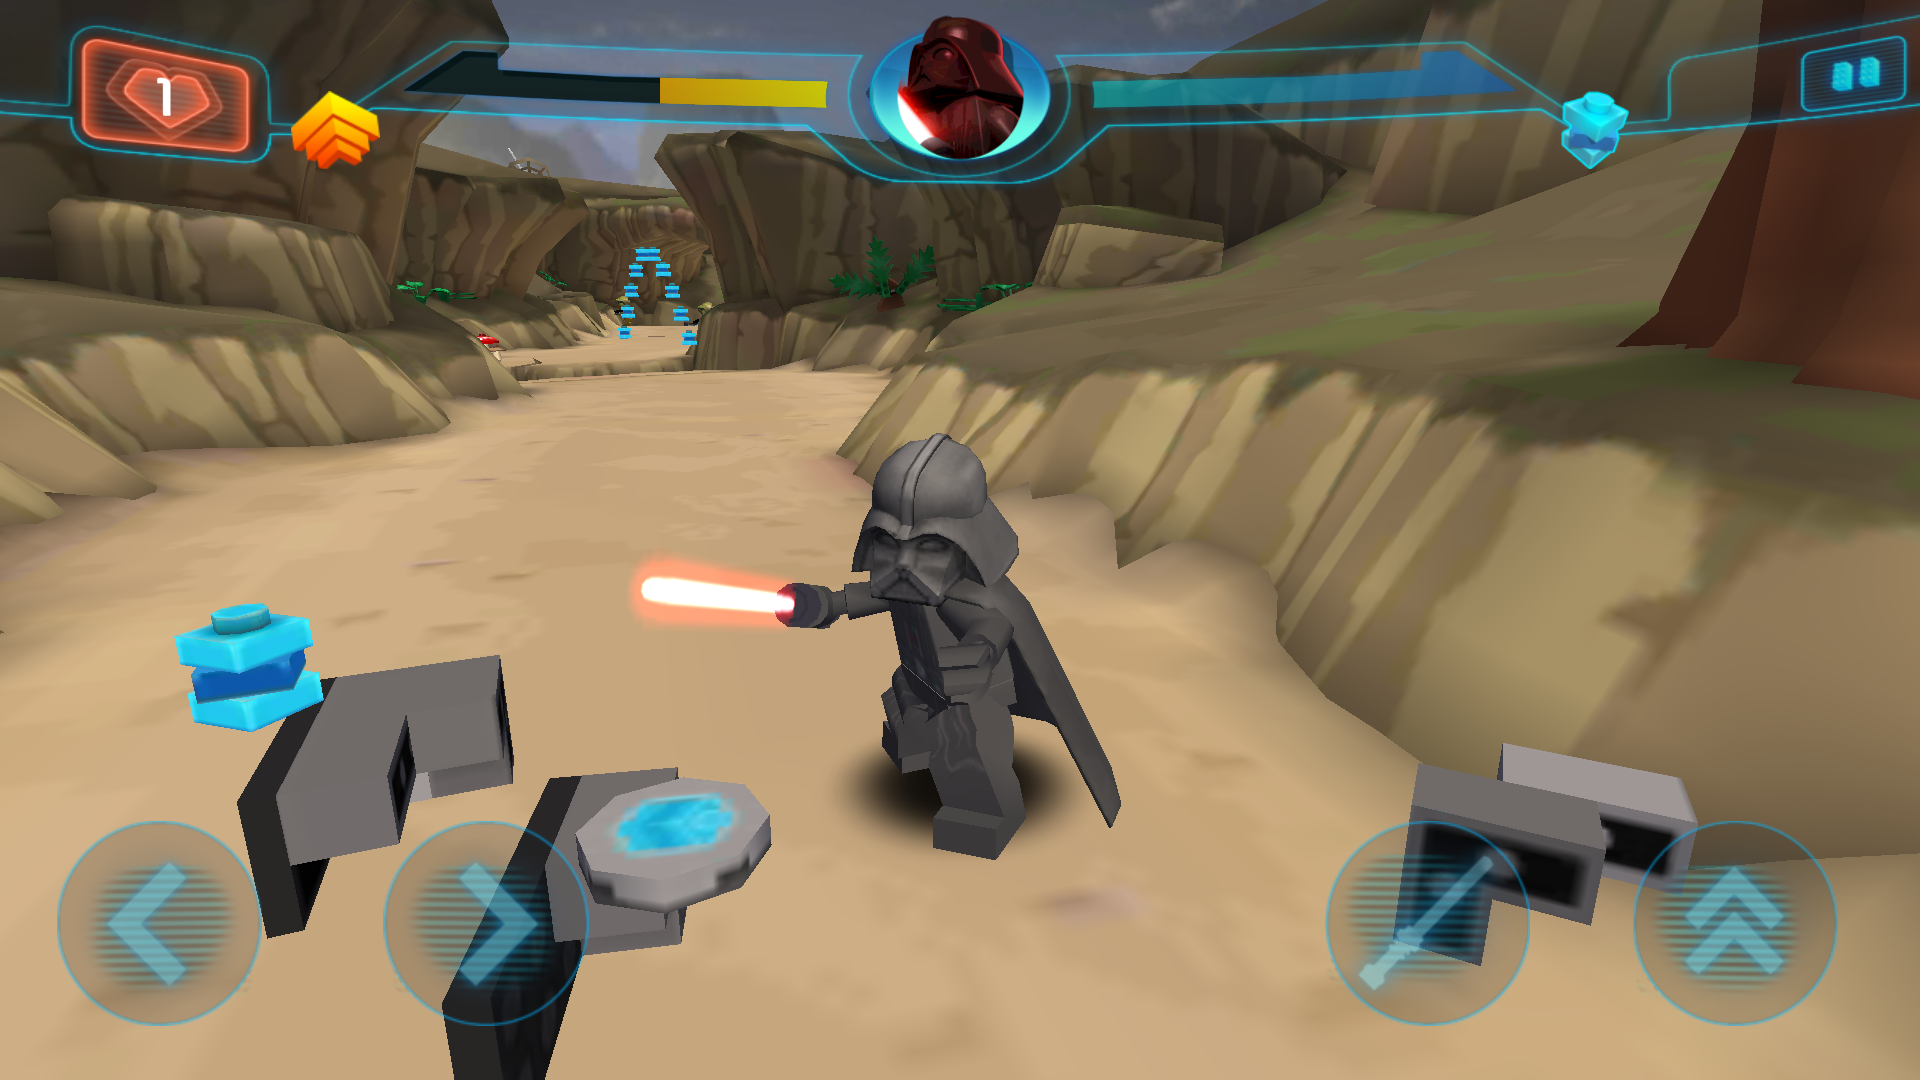 Multiplayer? LEGO Star Wars: The Complete Saga - GameFAQs